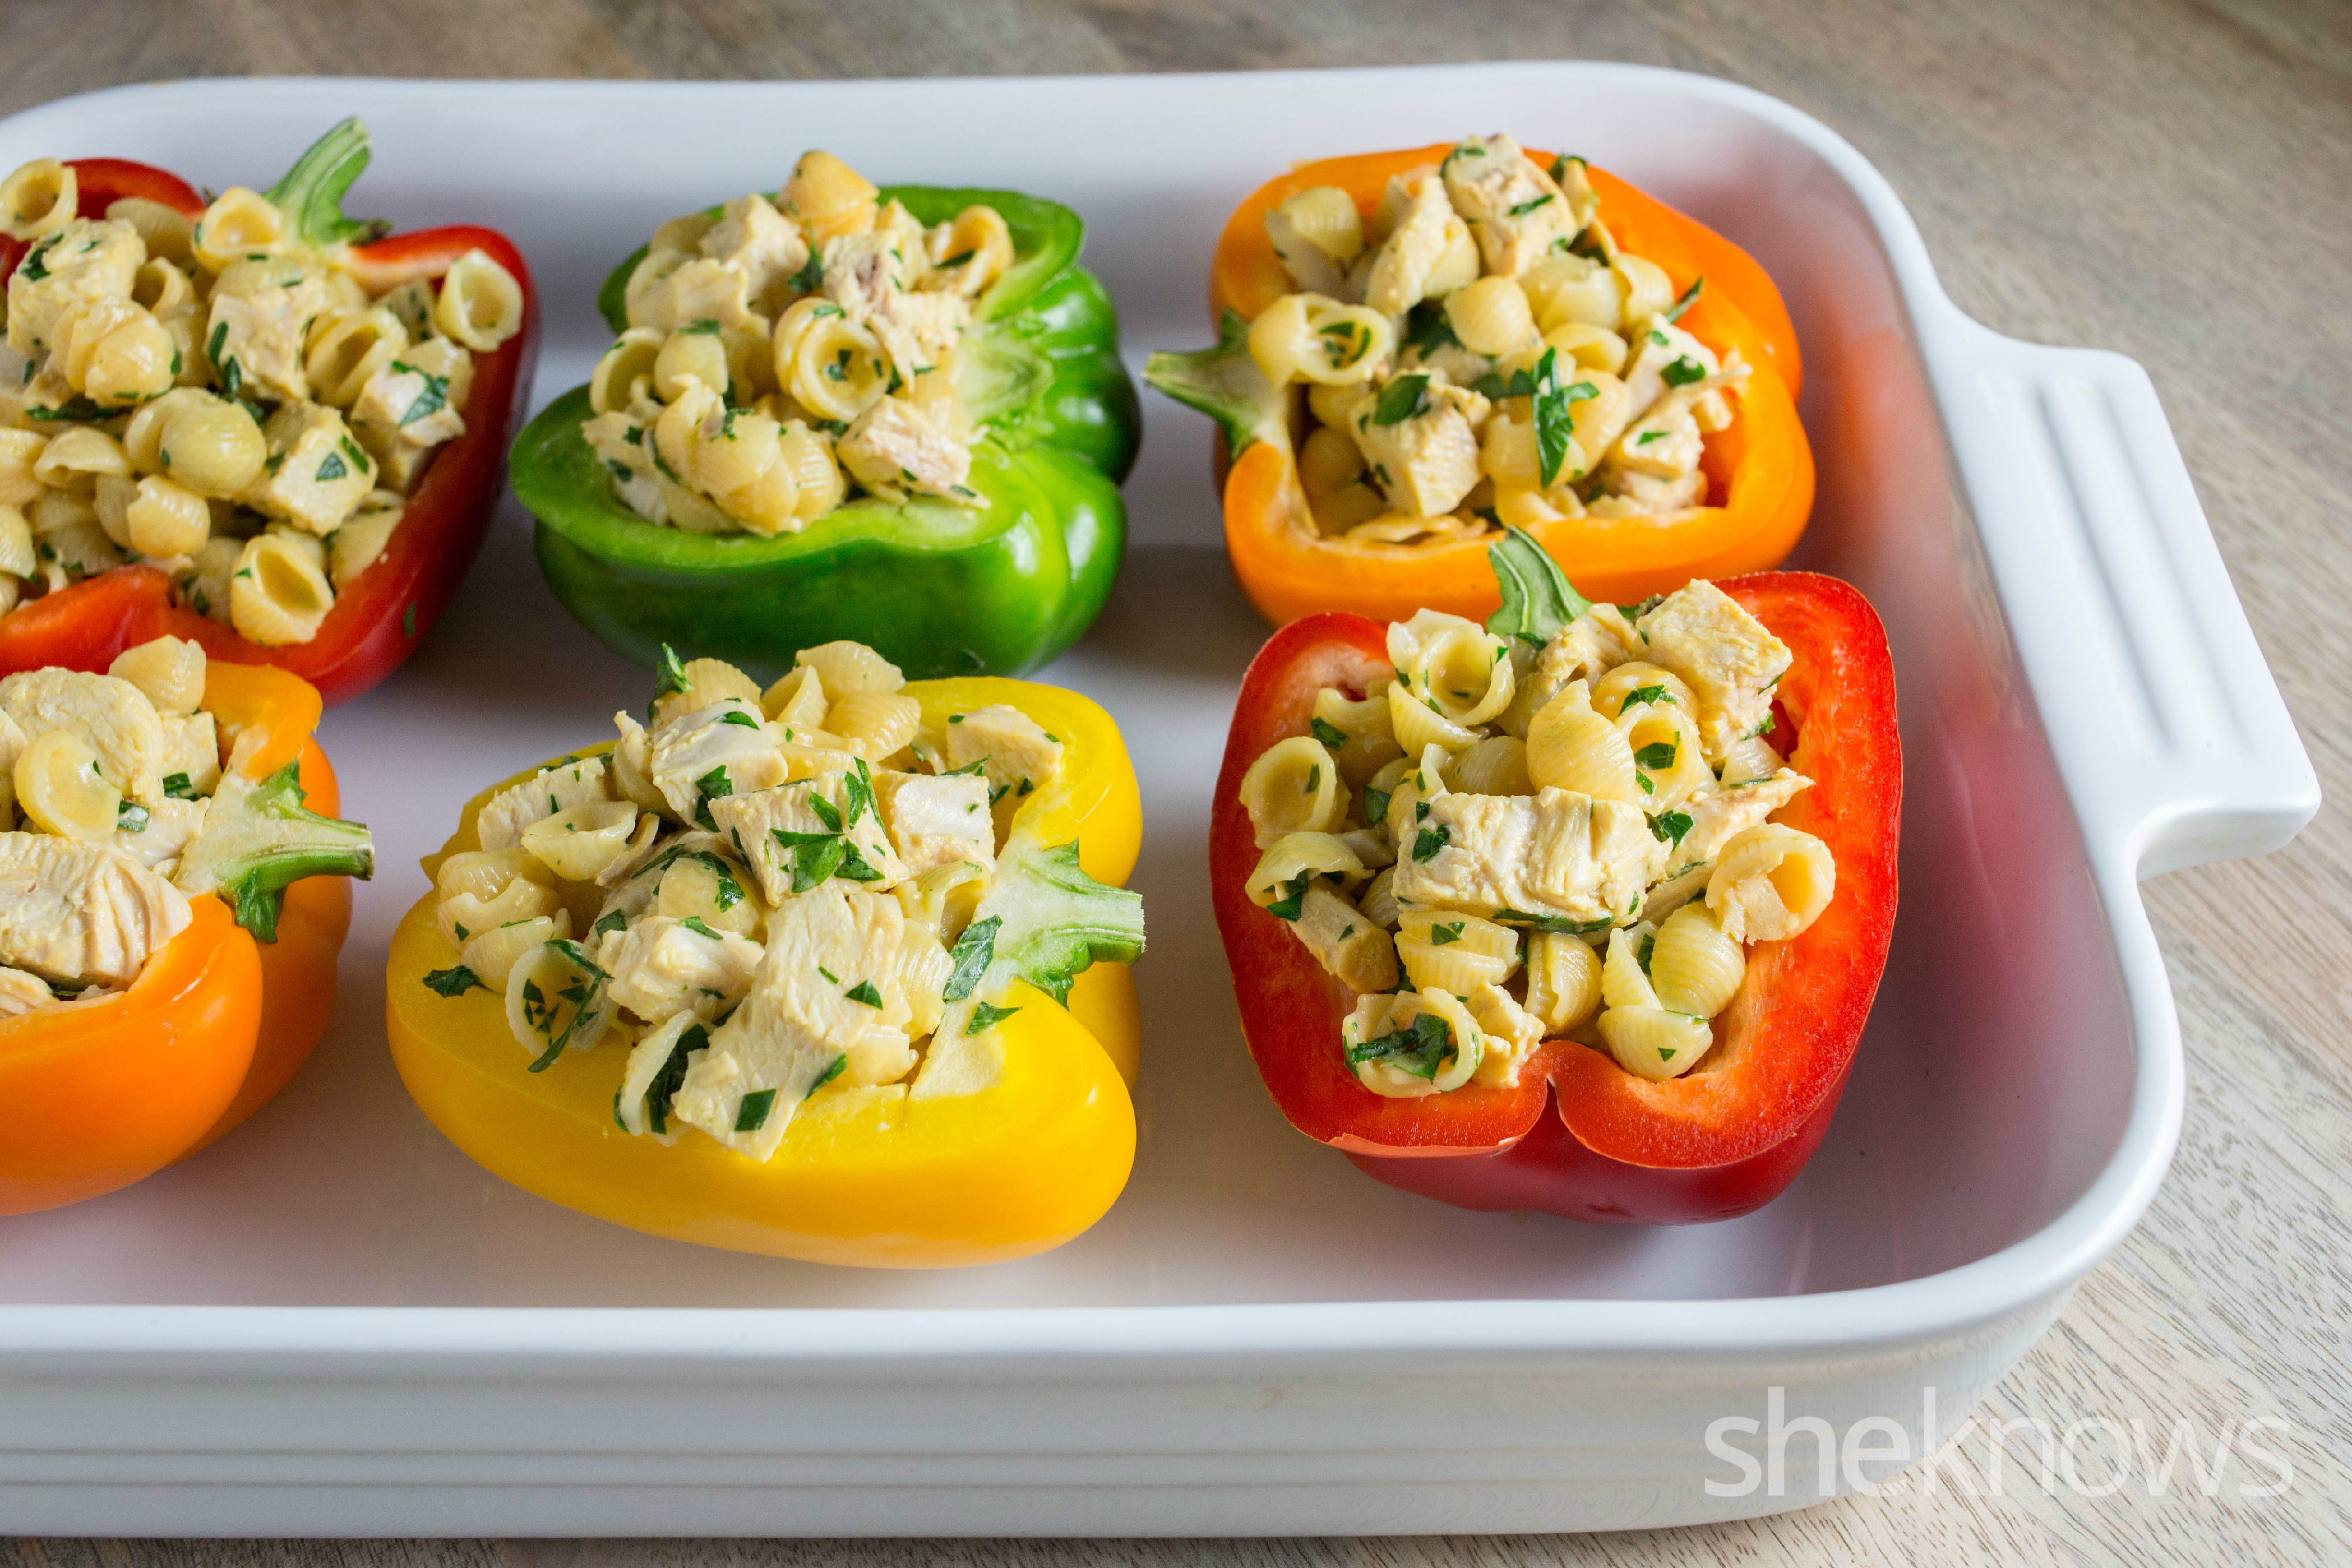 Annie's stuffed peppers